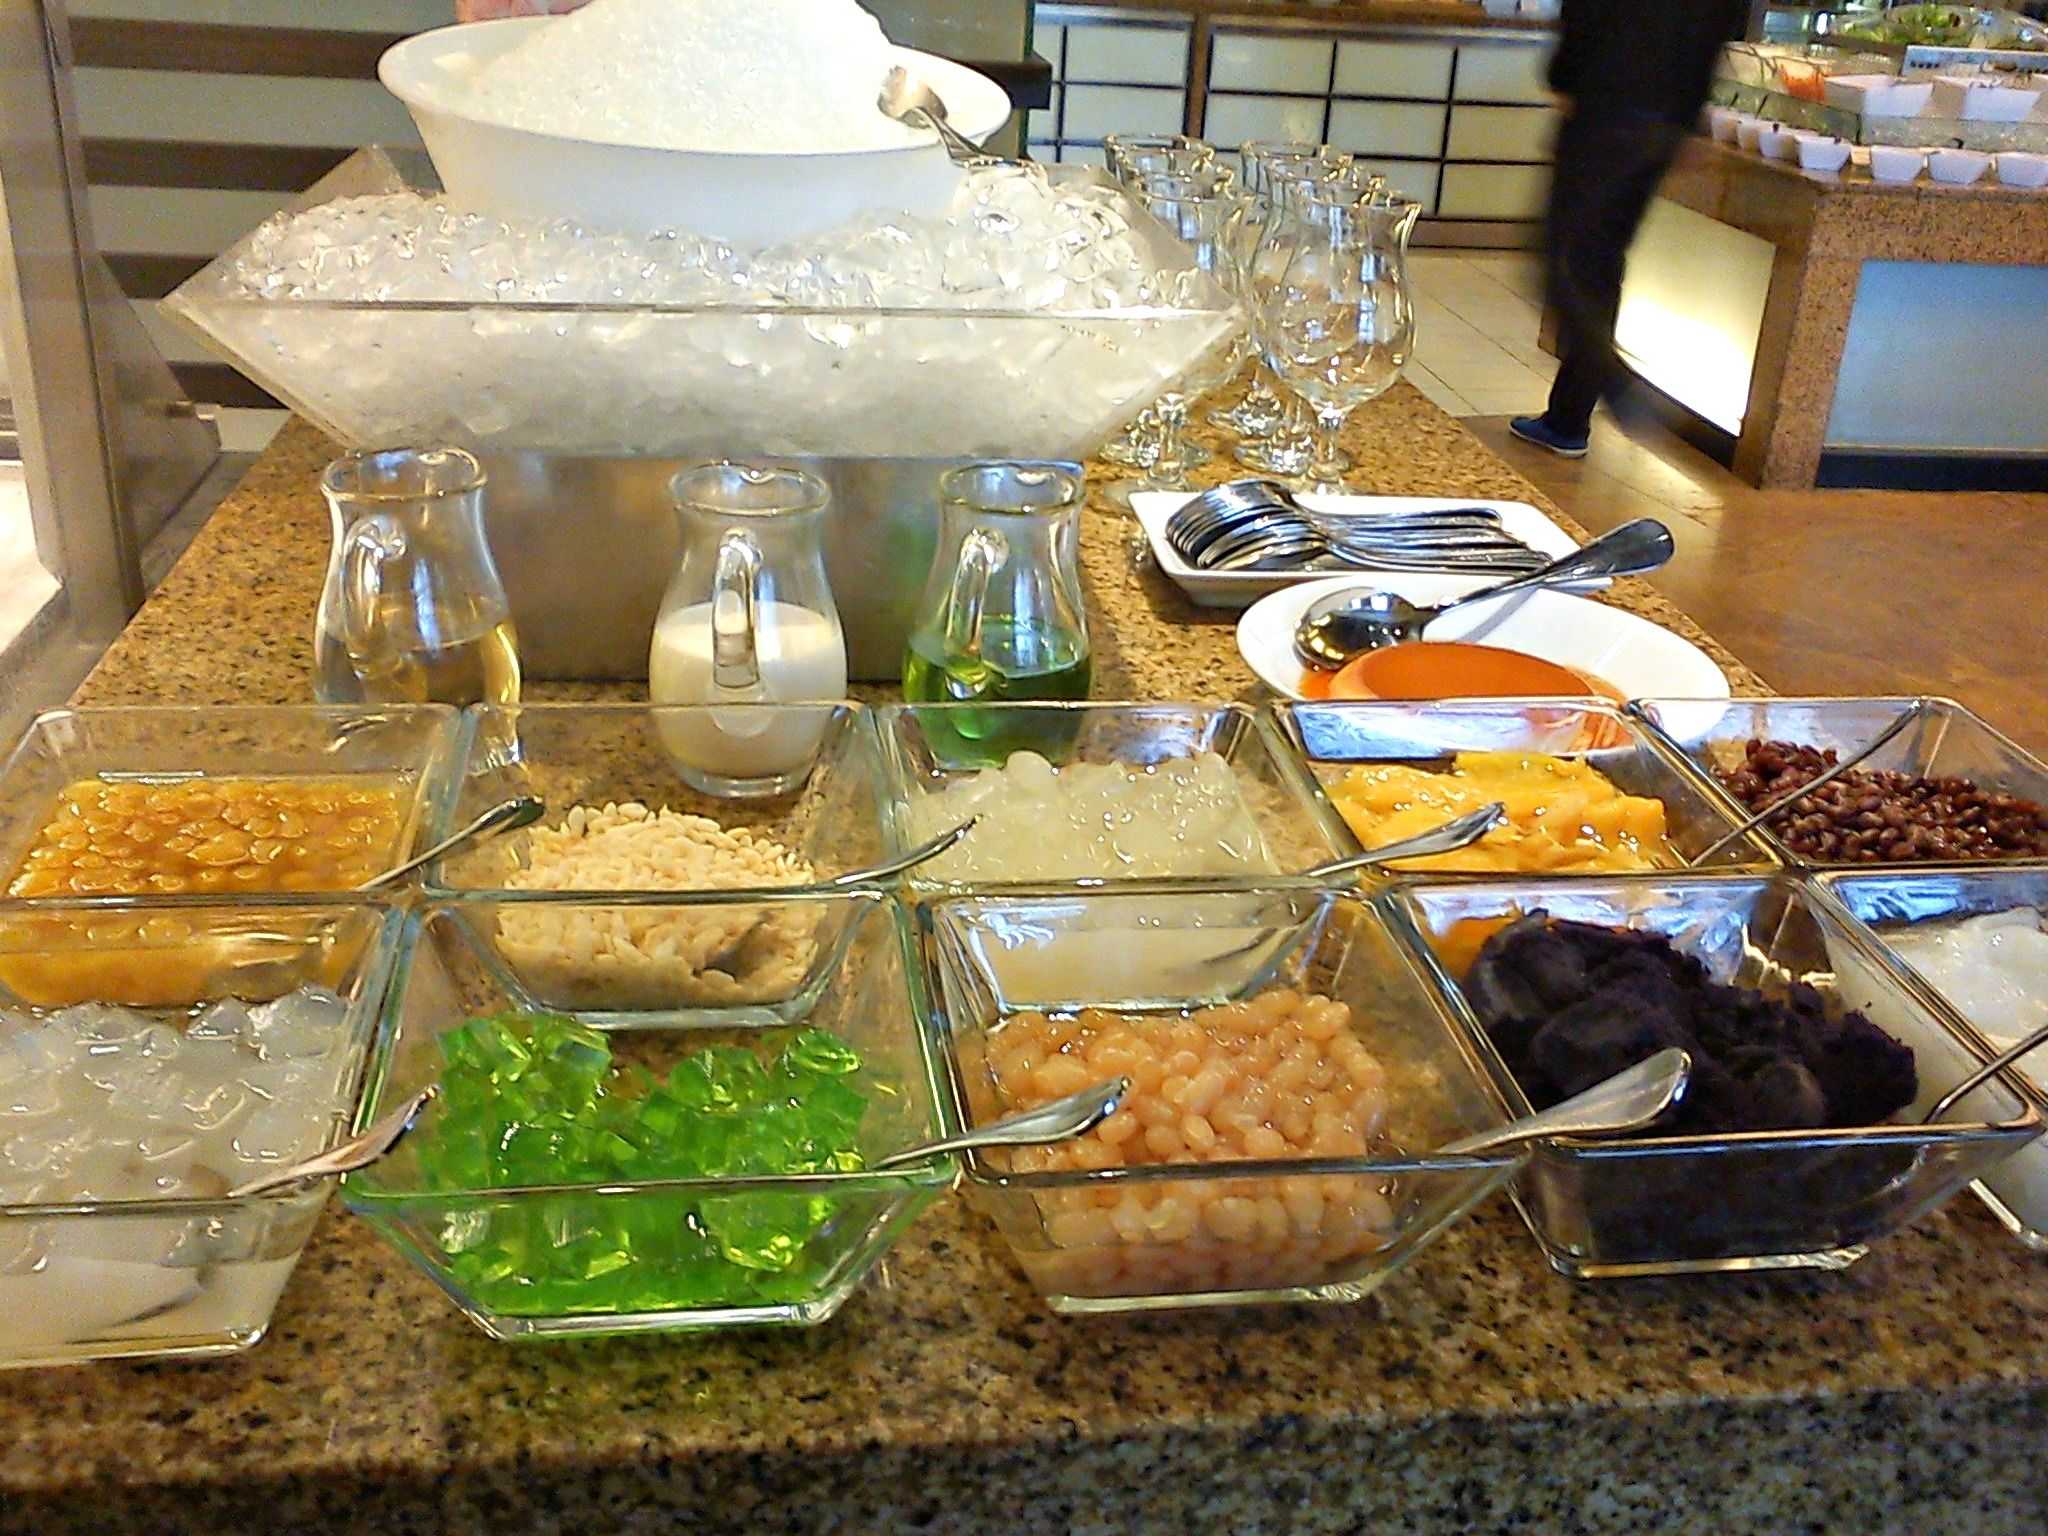 Filipino table setting - Would Love To Have A Halo Halo Dessert Bar Or Hawaiian Shaved Ice At The Reception